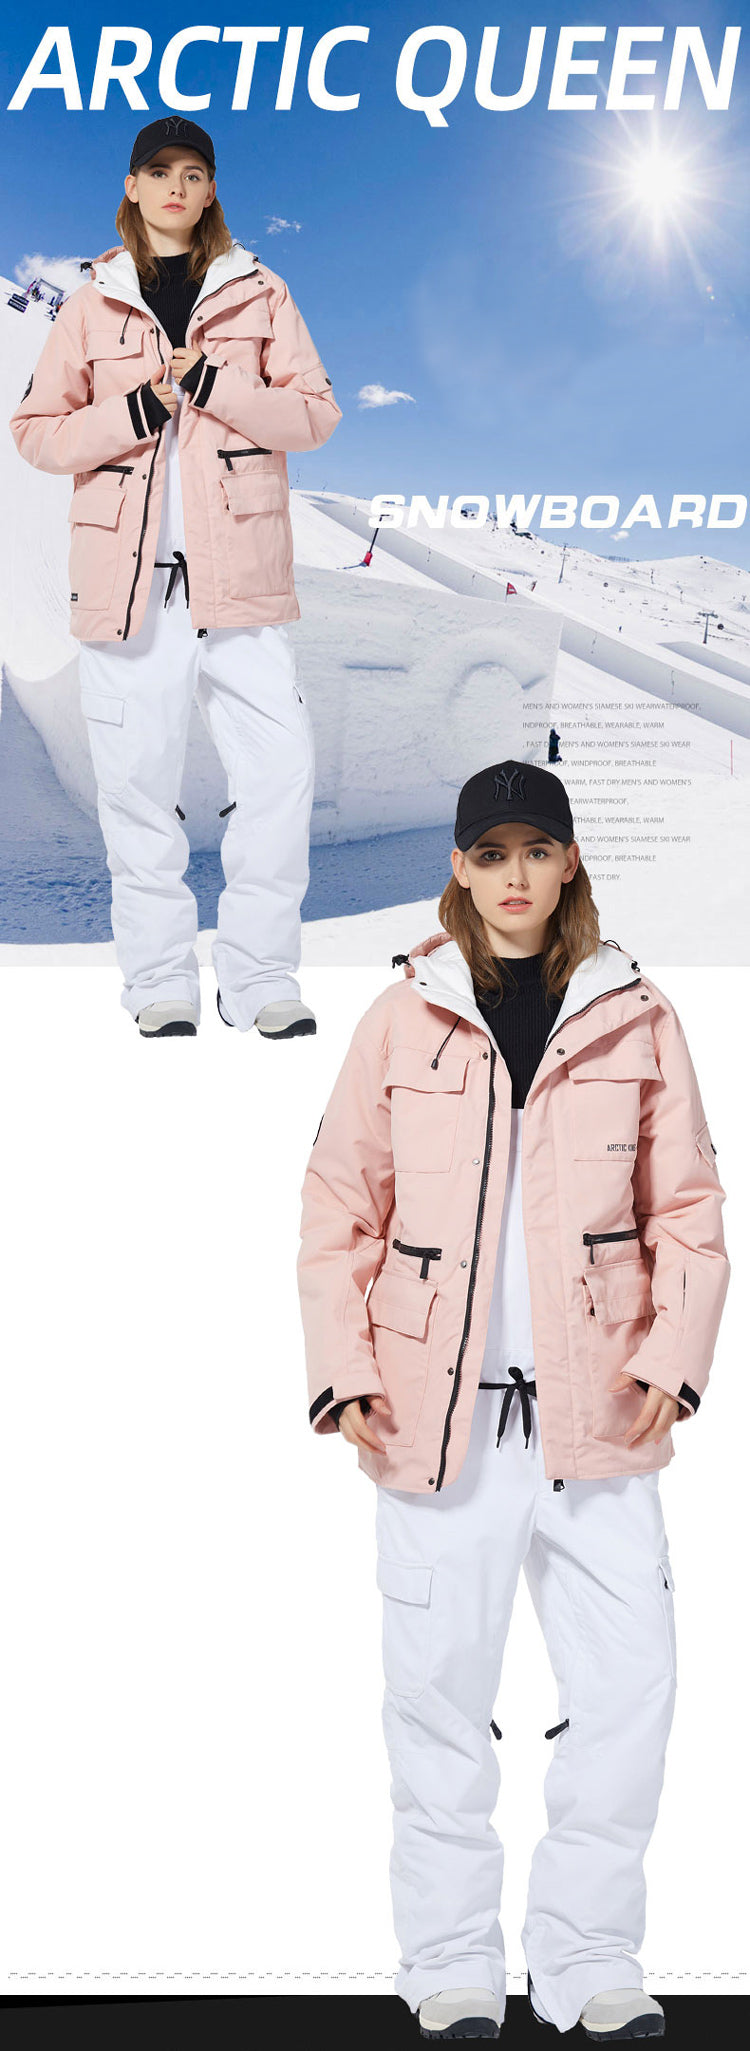 Women's Arctic Queen Top Quality Winter Fashion Outerwear Waterproof Ski Snowboard Jackets